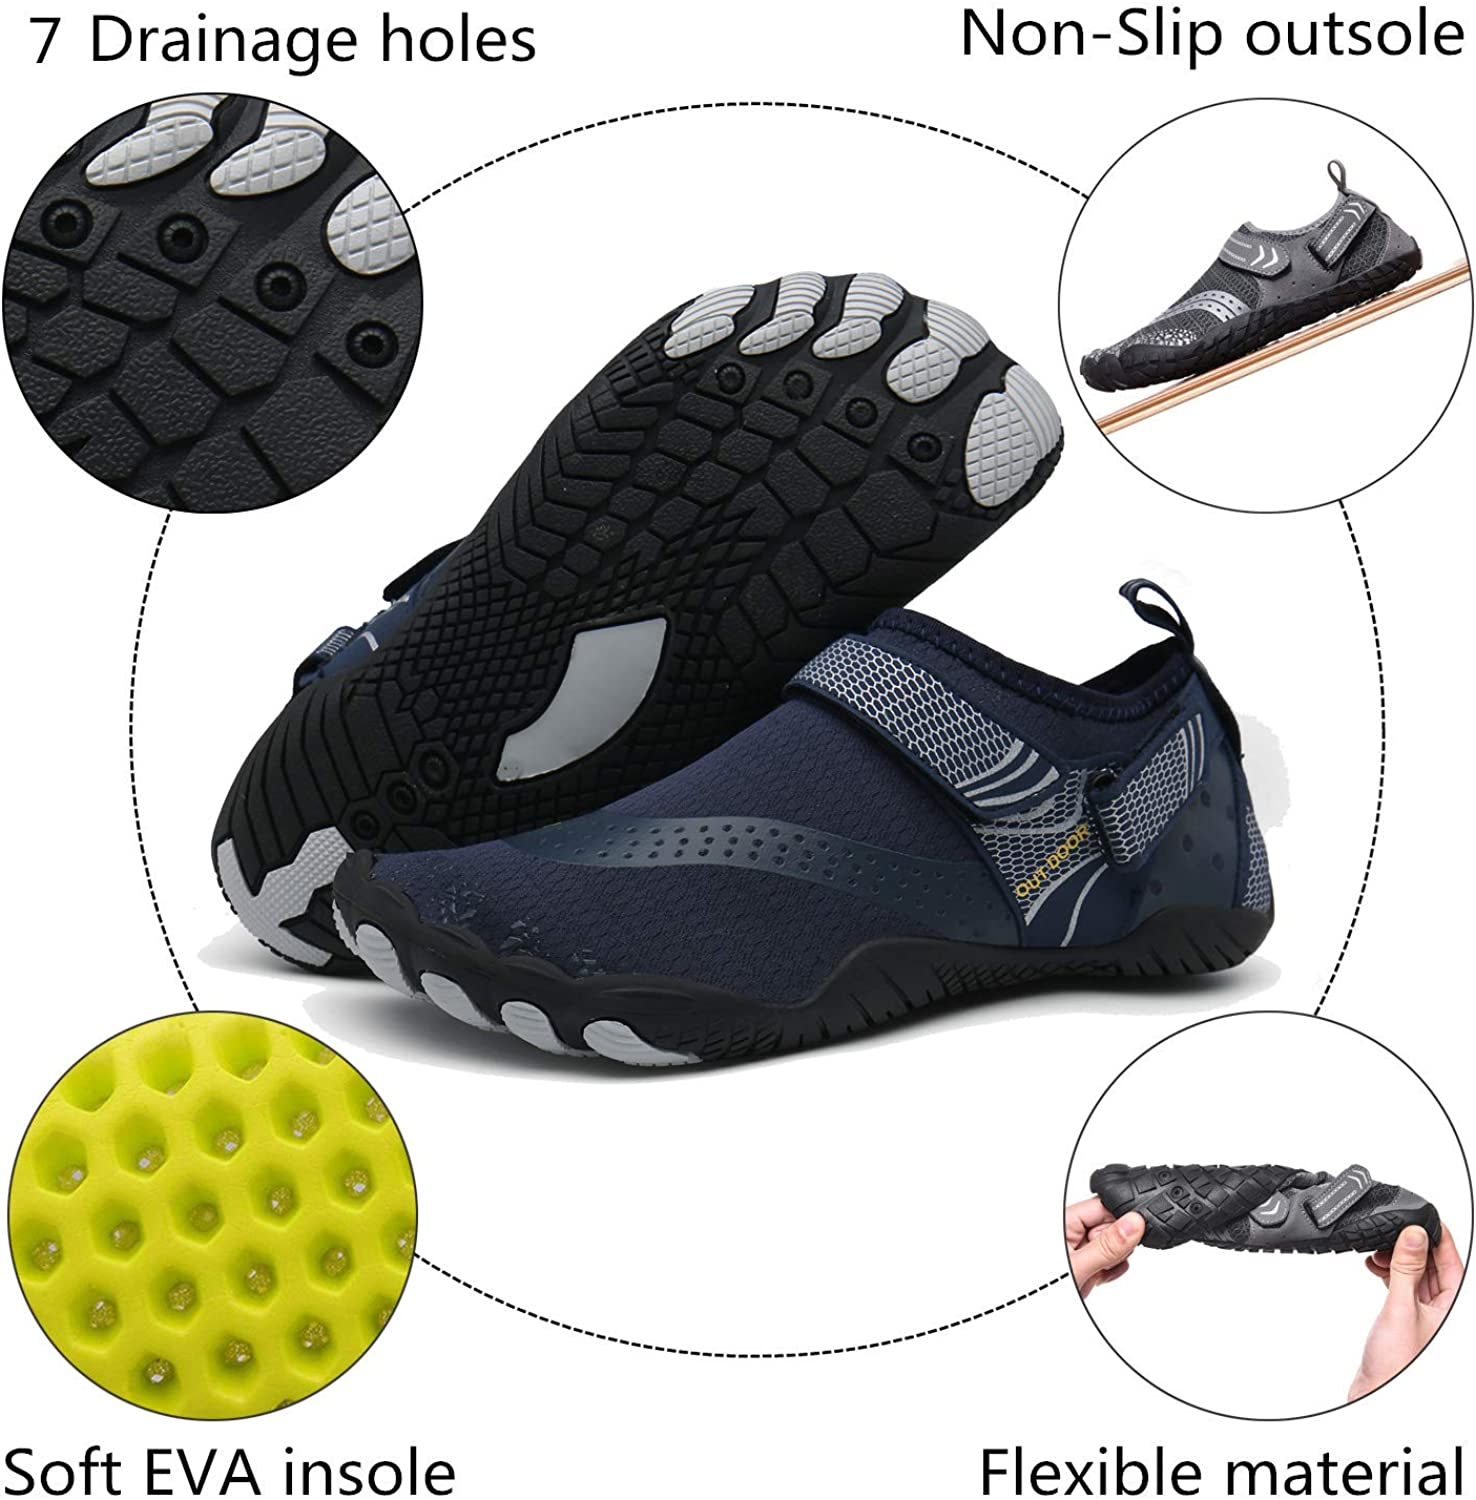 ChayChax Mens Womens Water Shoes Quick Dry Soft Barefoot Aqua Shoes for Surf Diving Swim Pool Beach Walking Sports Yoga